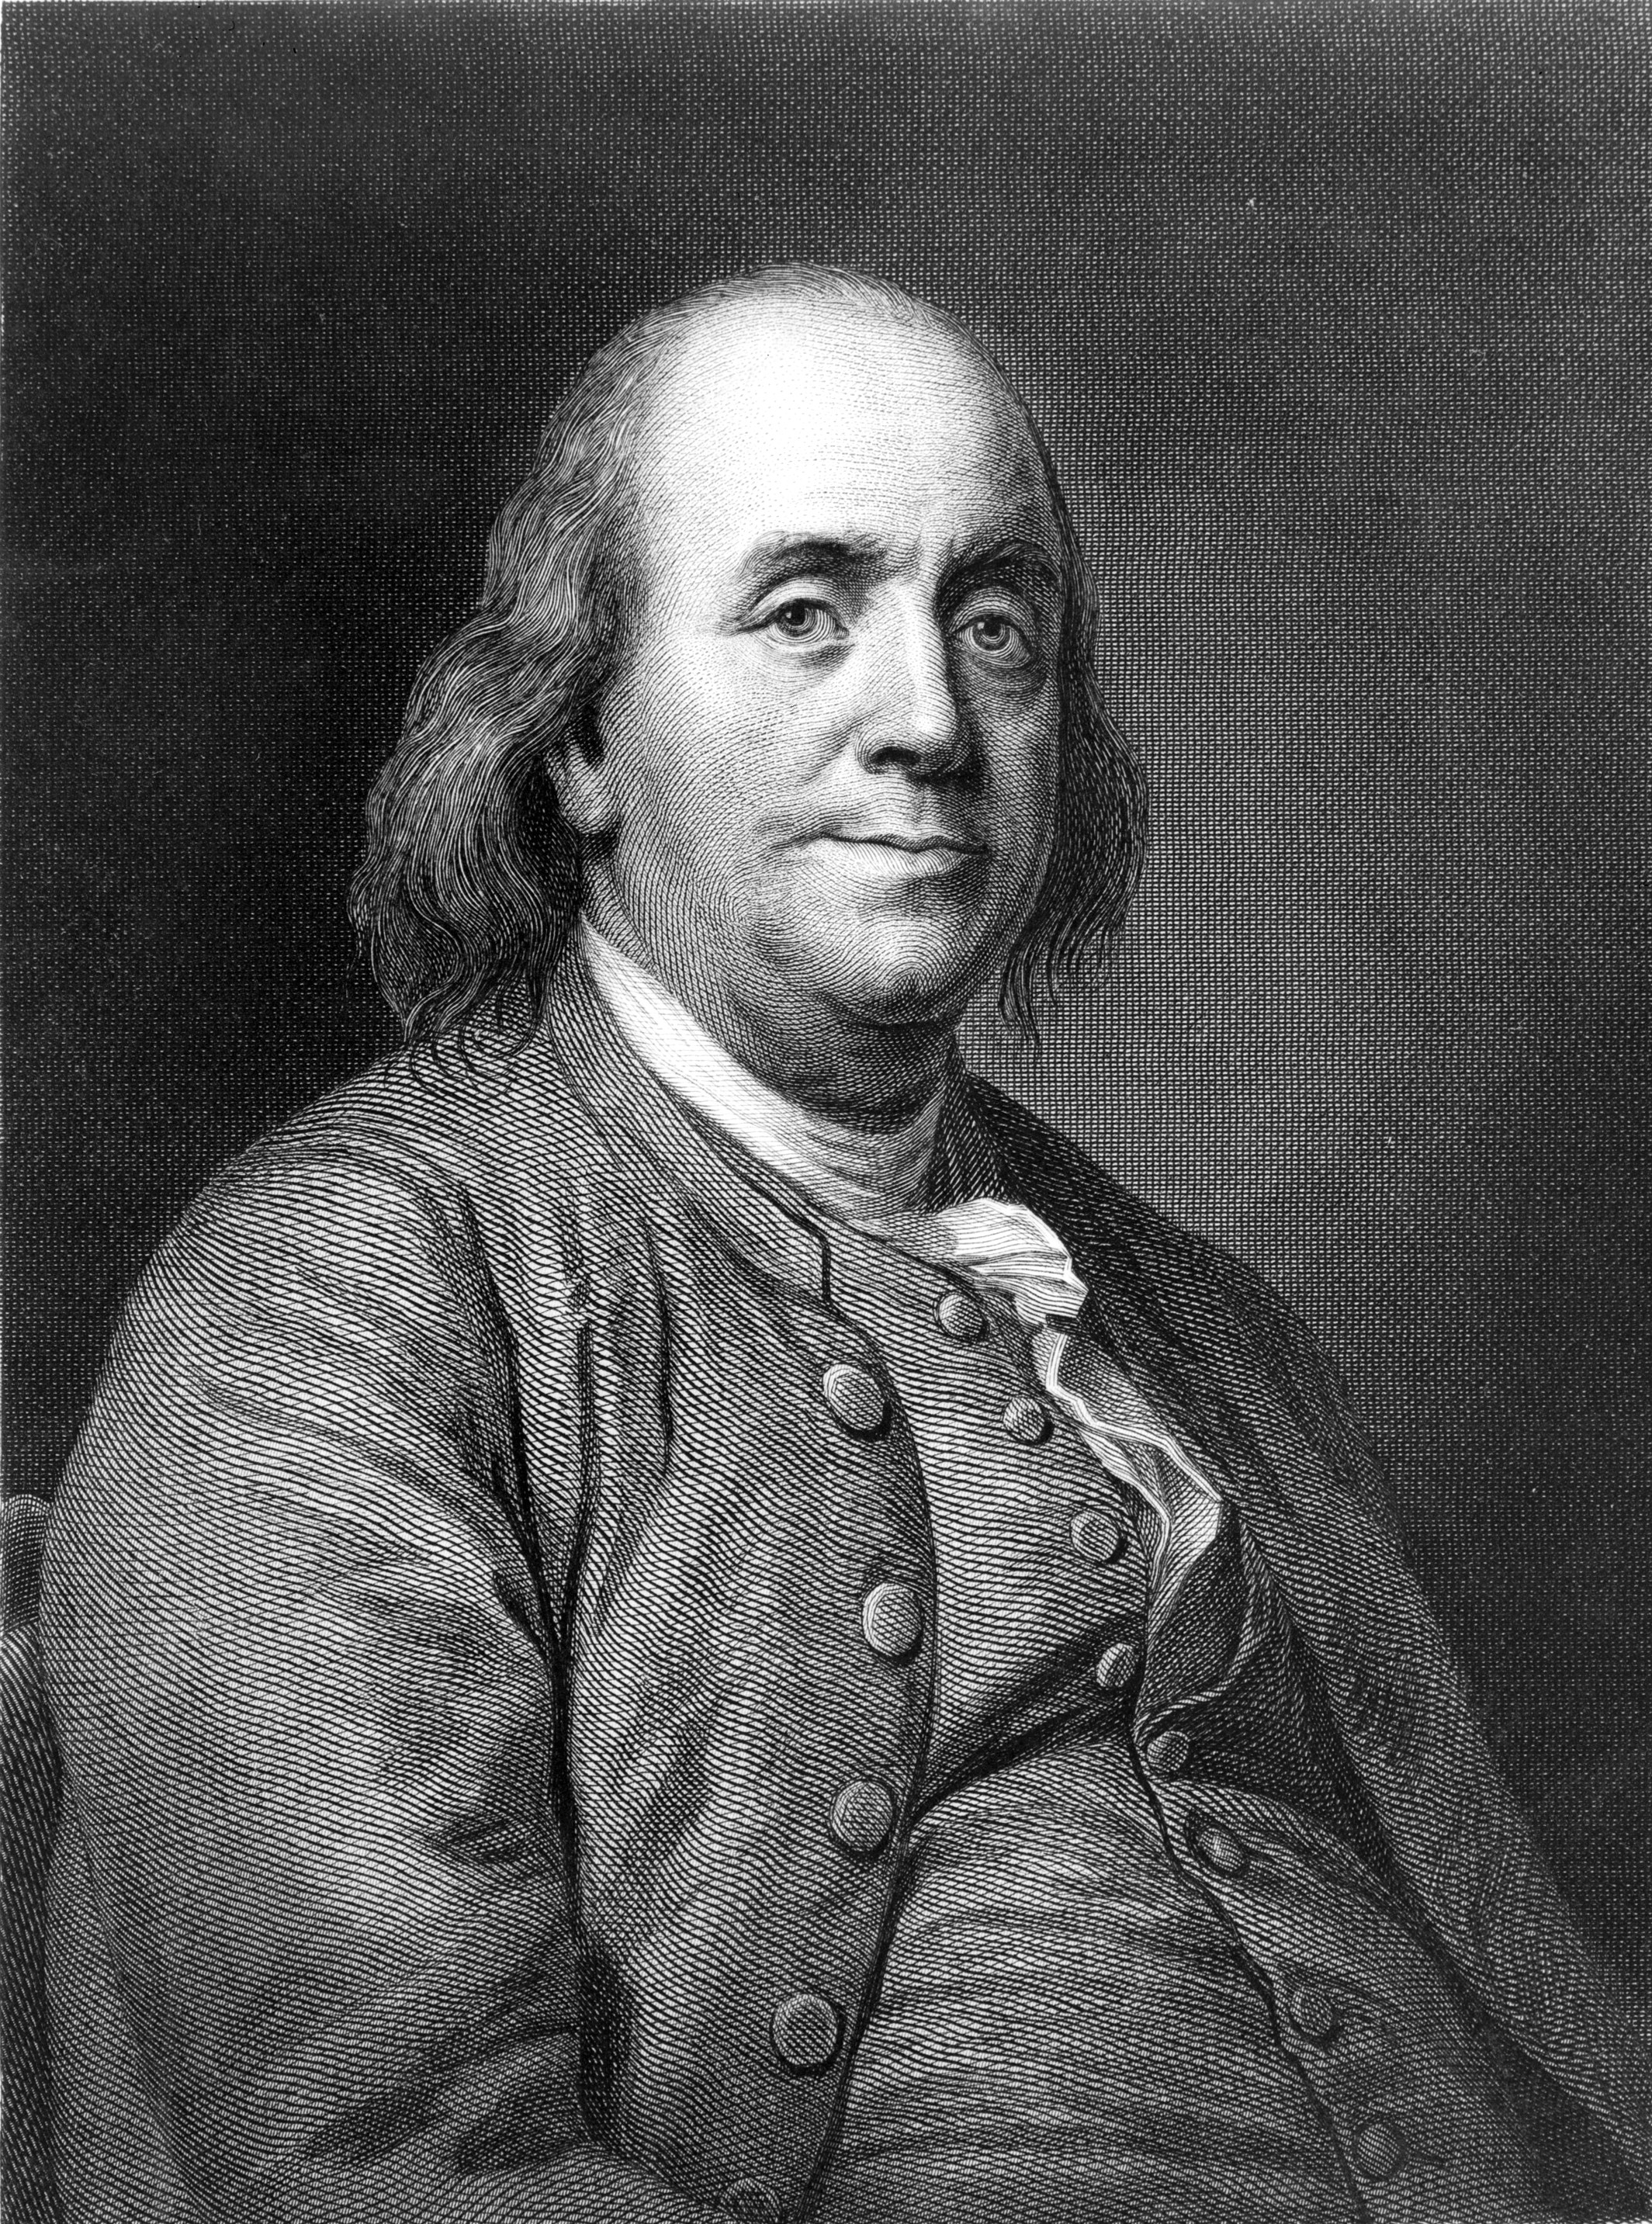 A half-length portrait of a bald, somewhat portly man in a three-piece suit.